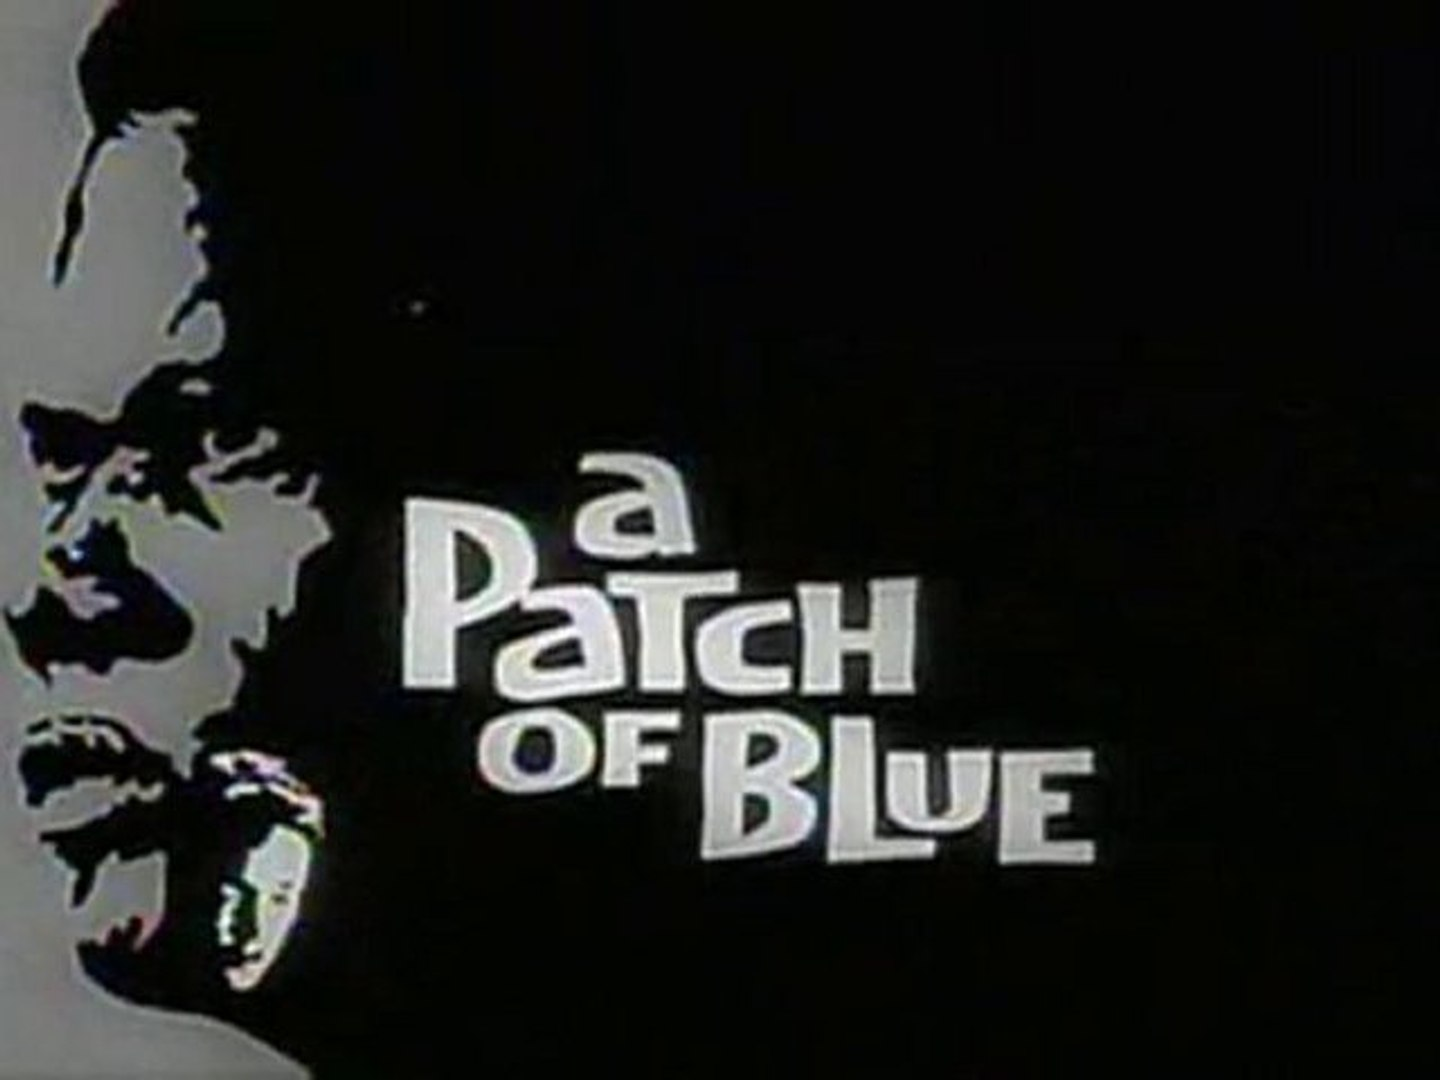 A PATCH OF BLUE (1965) Trailer